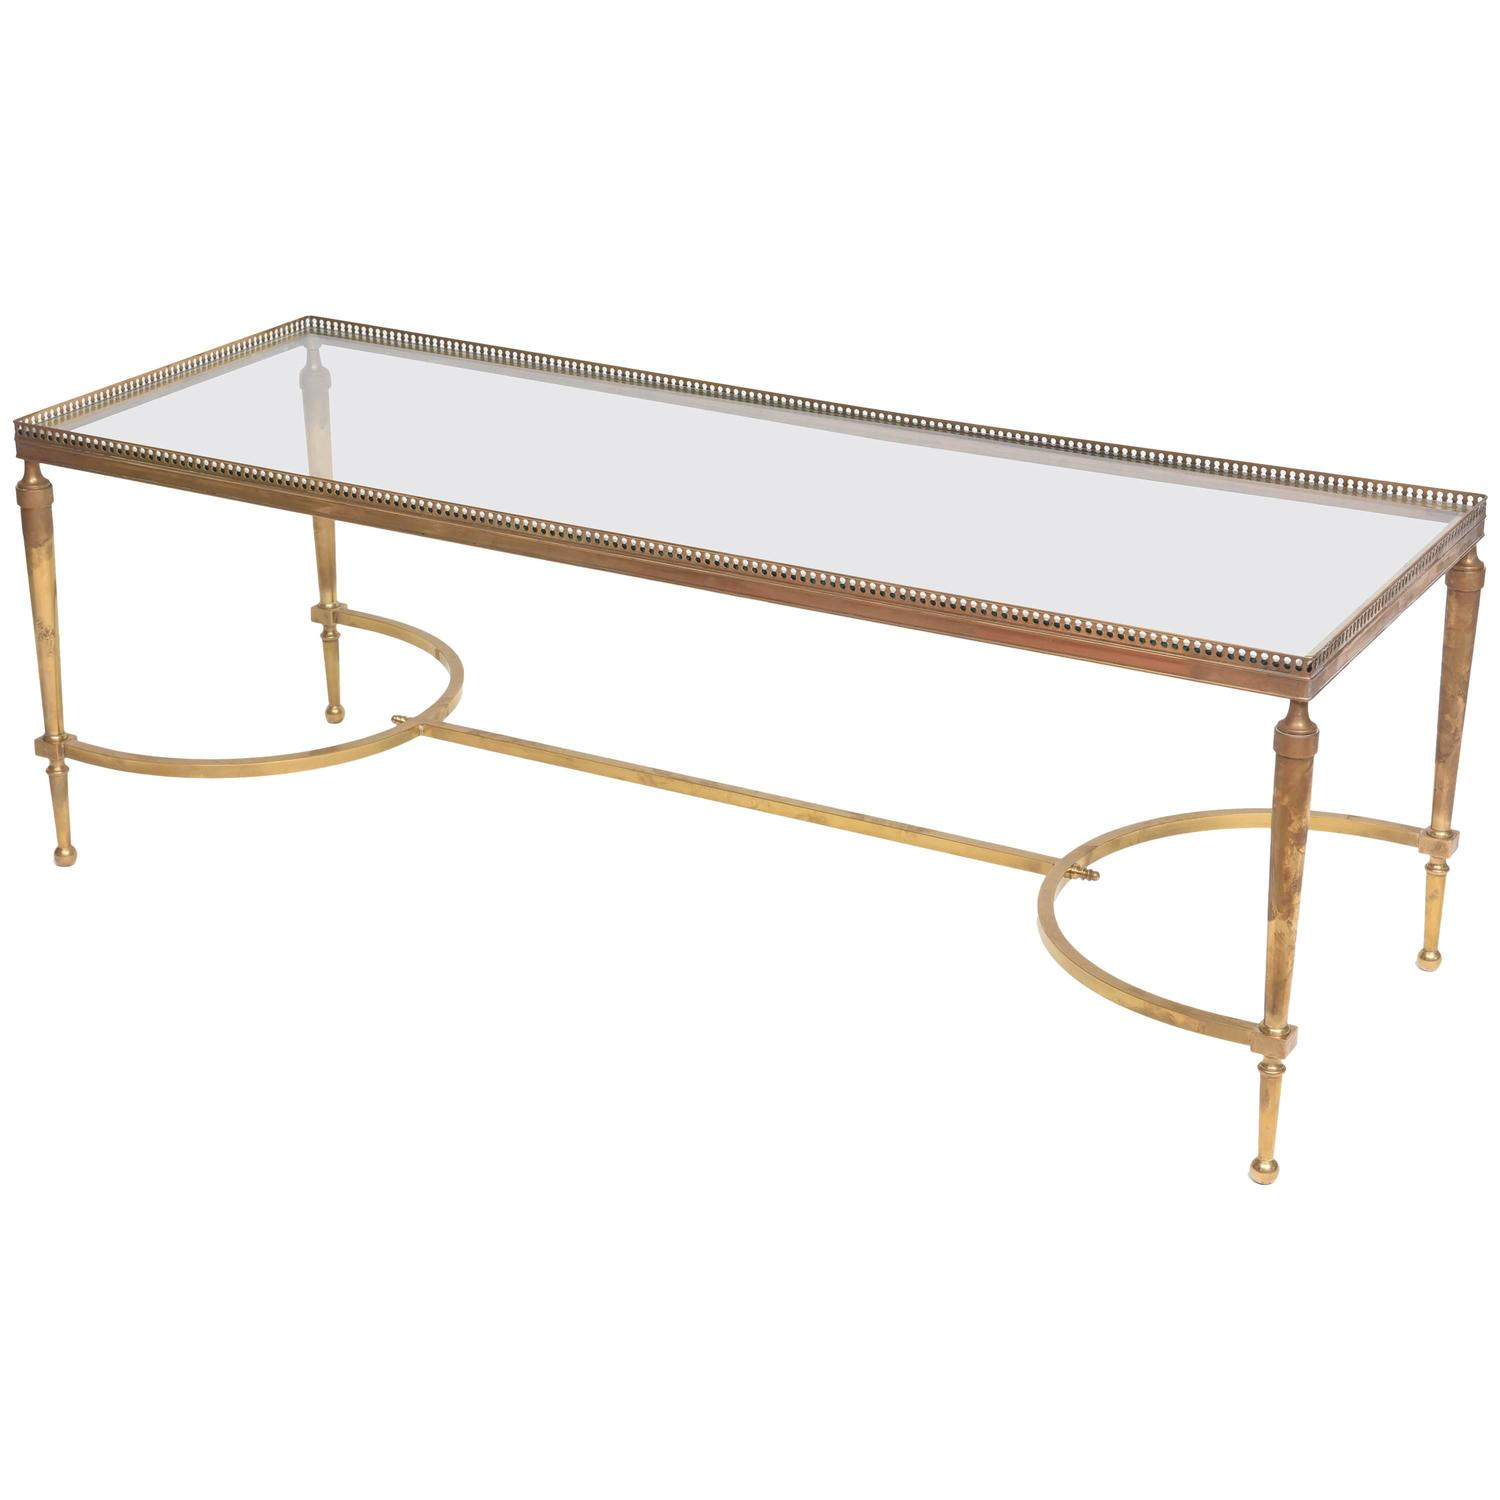 Rare Maison Jansen Bronze And Glass Coffee Cocktail Table France 1940s At 1stdibs